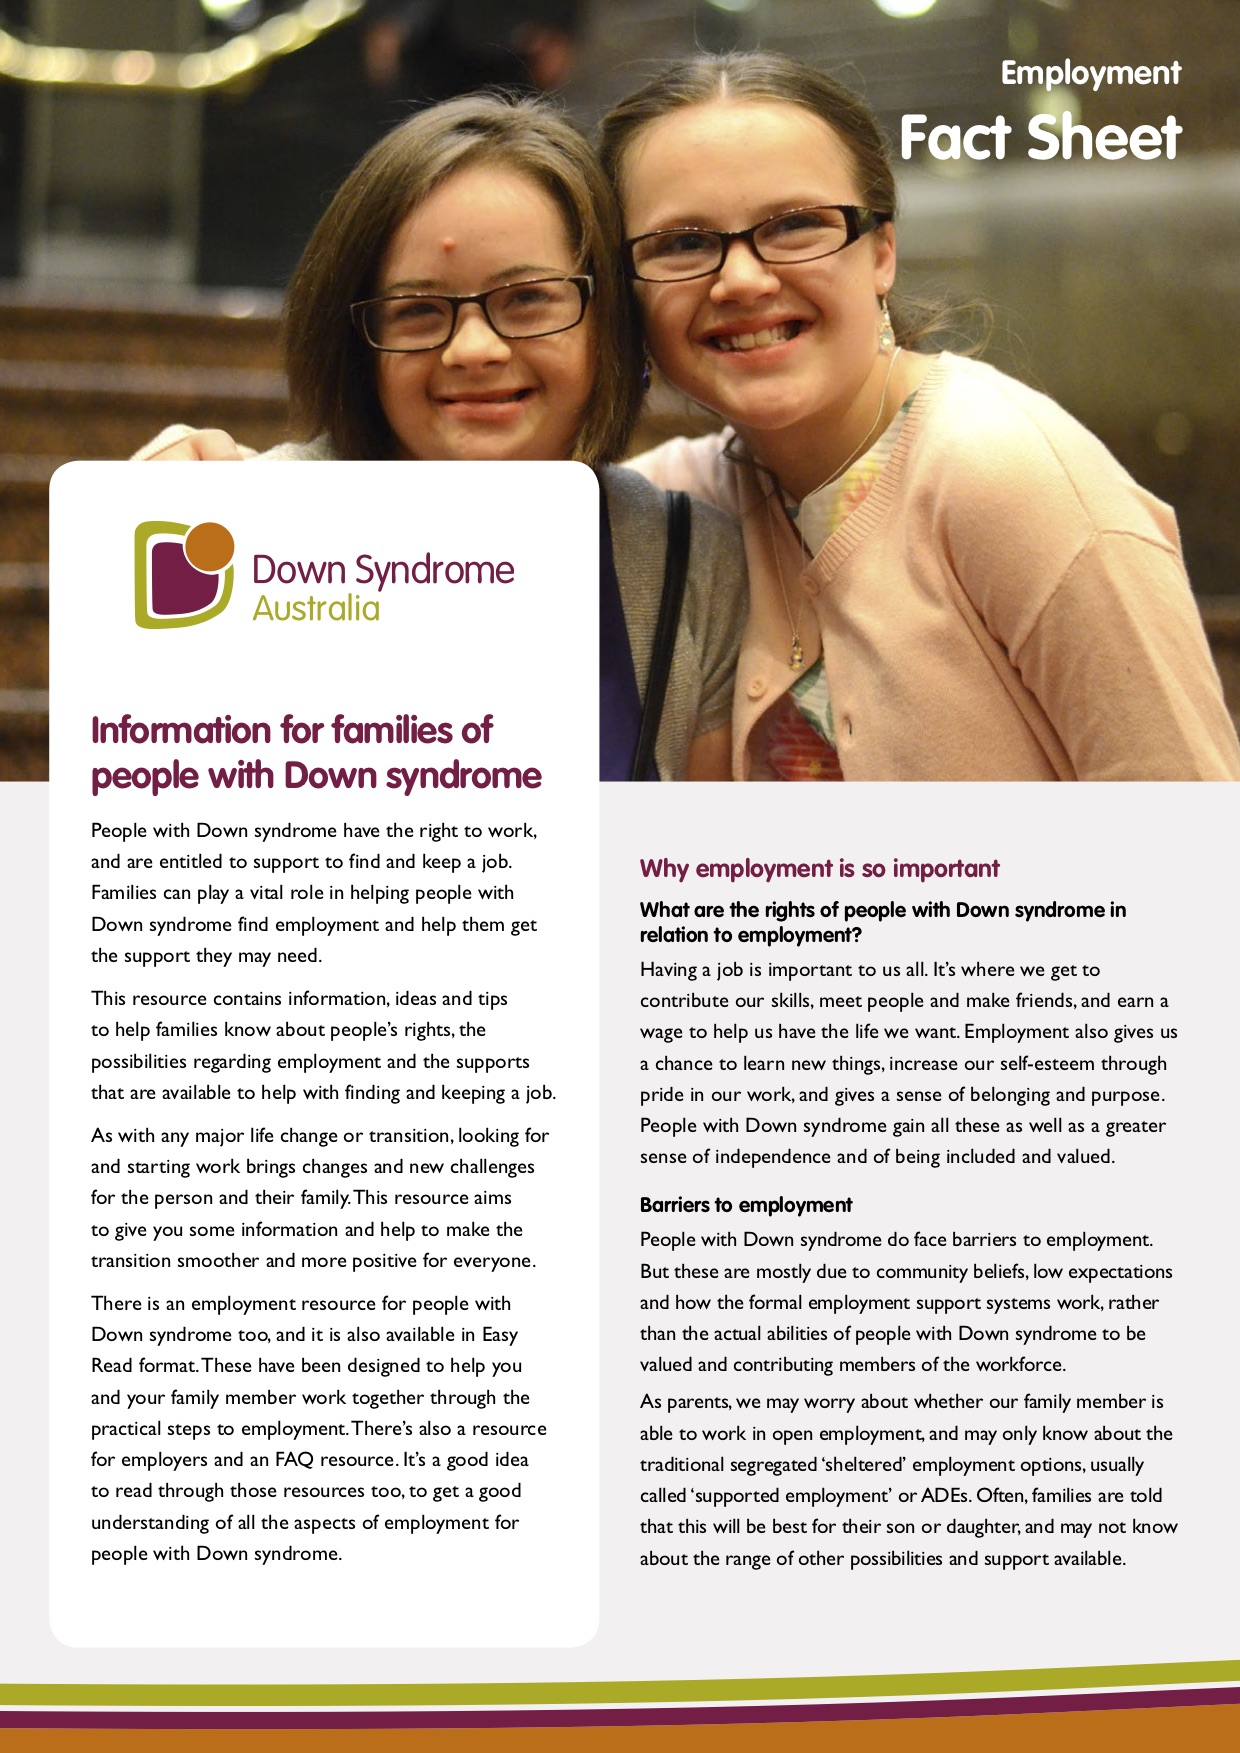 DSA employment Information for Families of people with Down syndrome cover